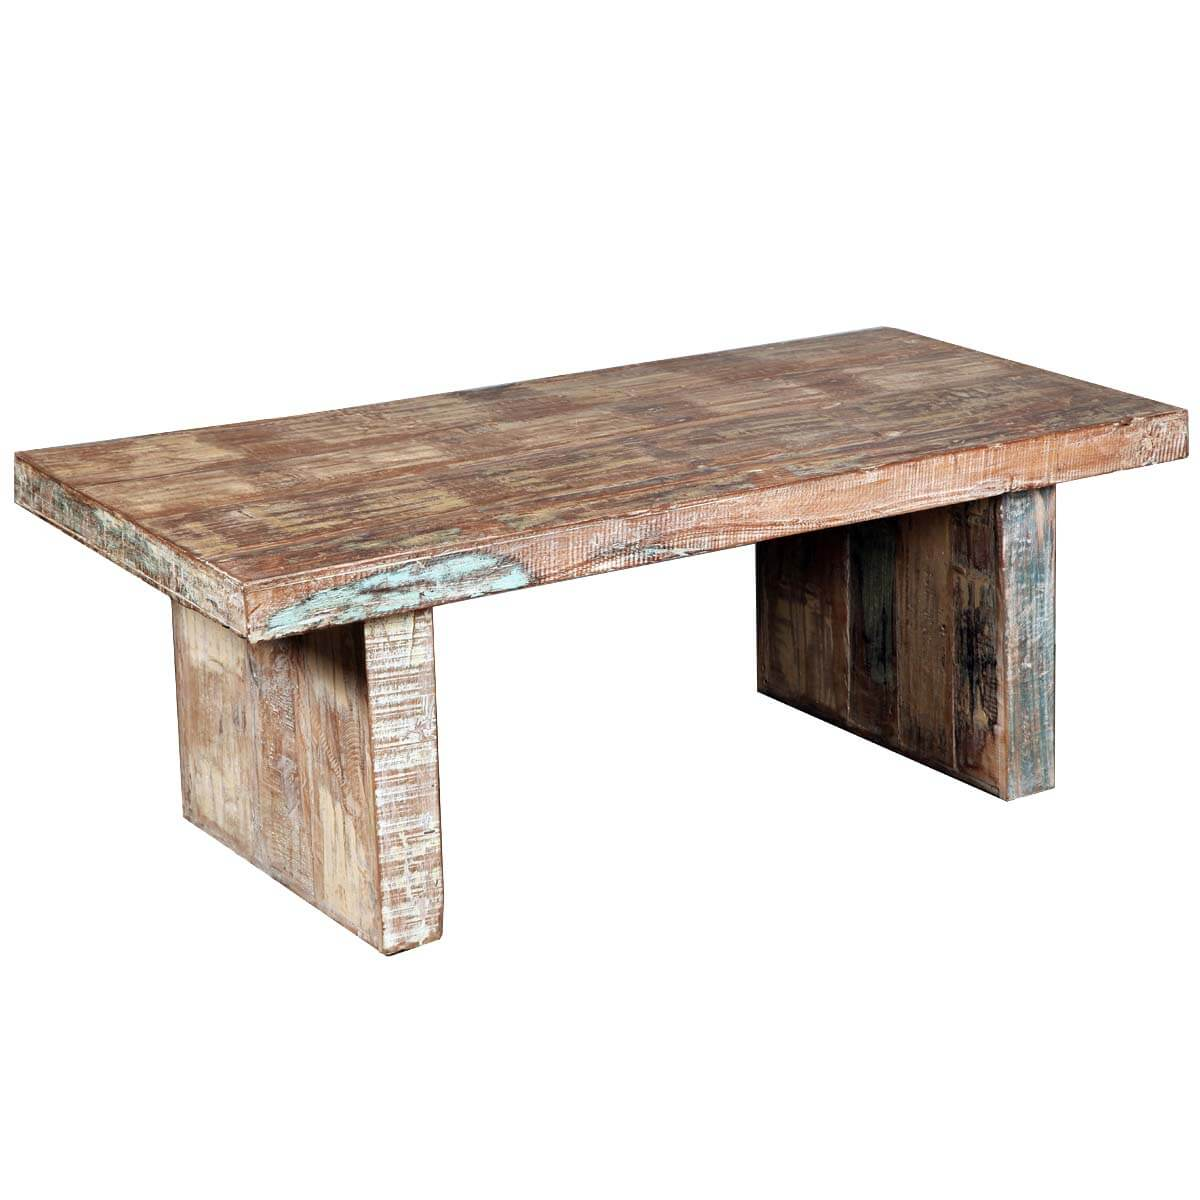 Collection Rustic Mission Reclaimed Wood Distressed Coffee Table